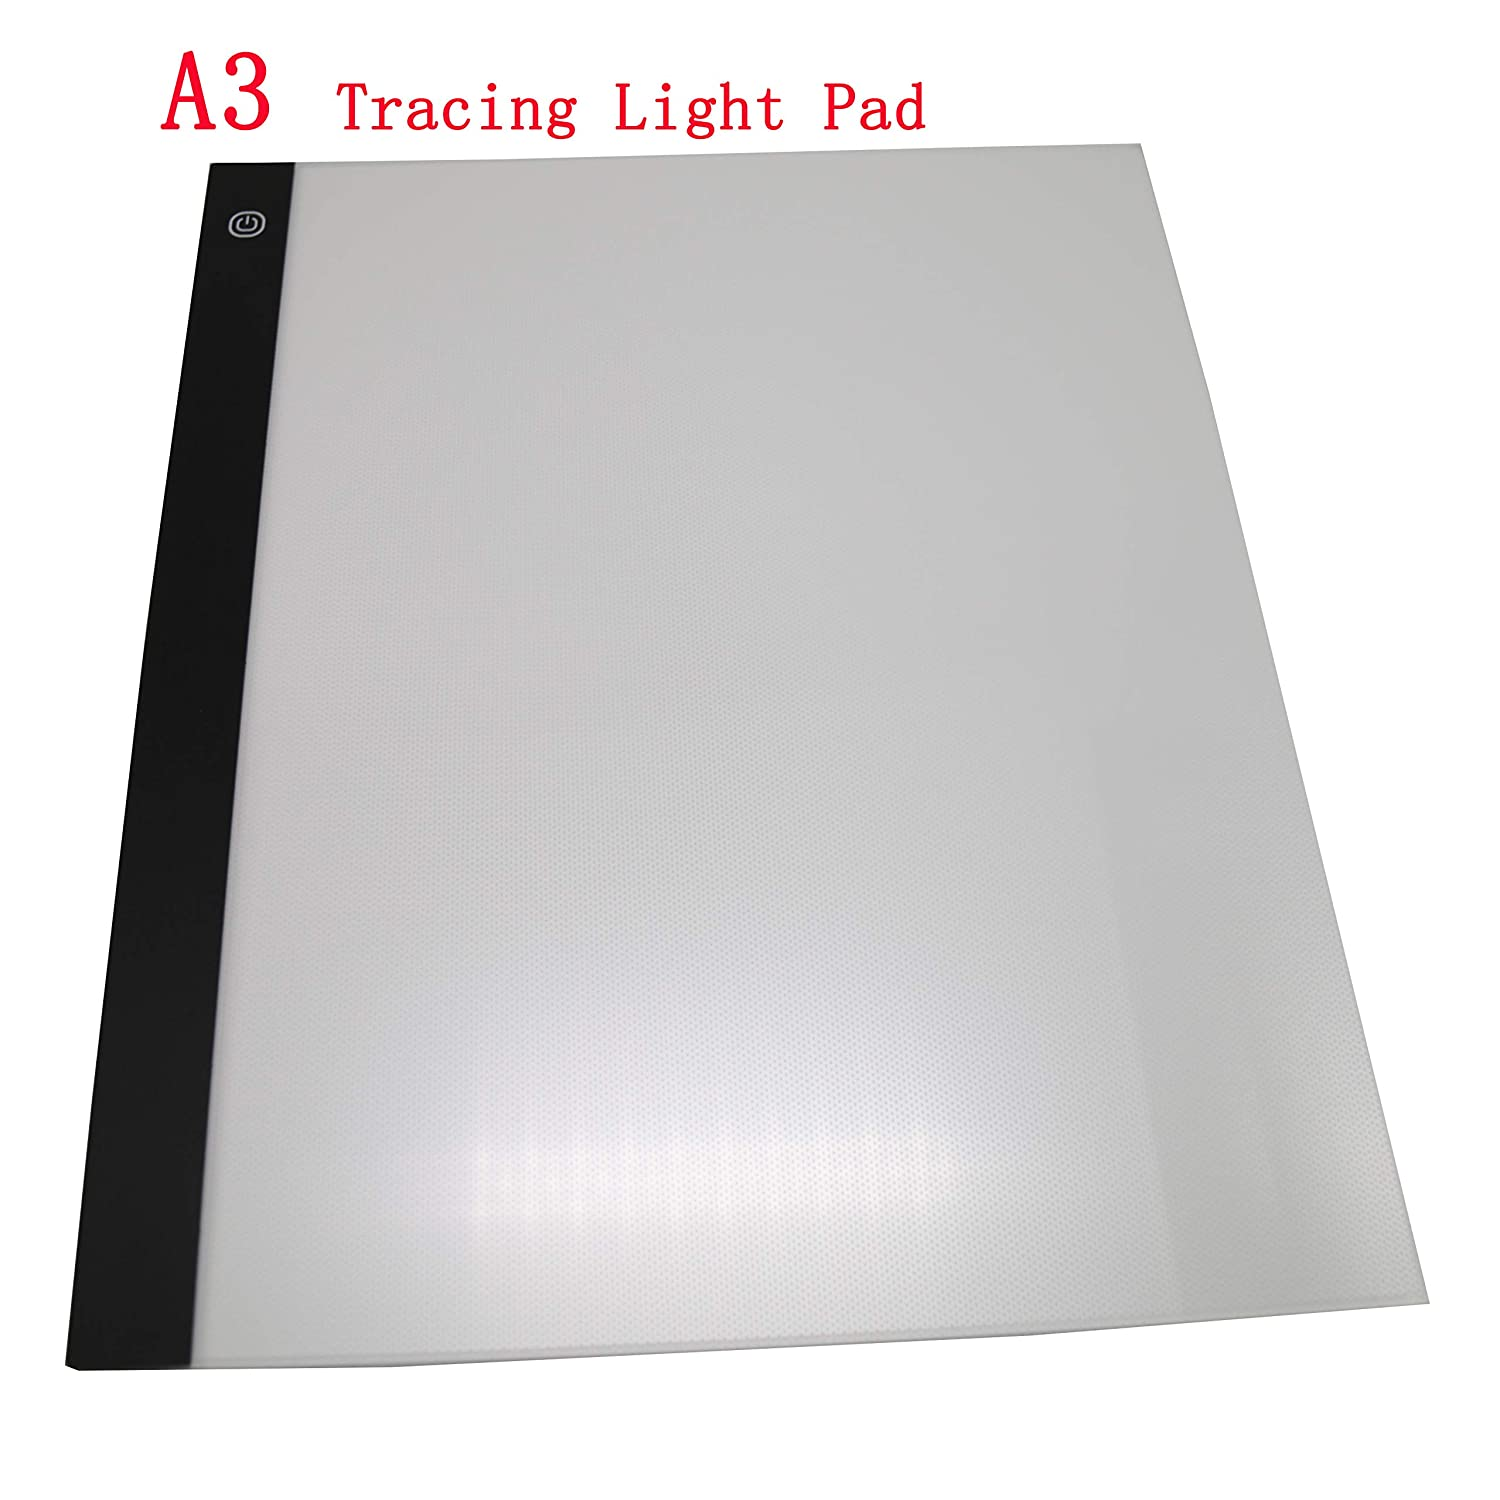 Diamond Painting A4 Ultra-Thin Portable LED Light Box Tracer USB Power Cable Dimmable Brightness LED Artcraft Tracing Light Pad for Artists Drawing Sketching Animation Stencilling X-ray Viewing TLL TECHNOLOGY